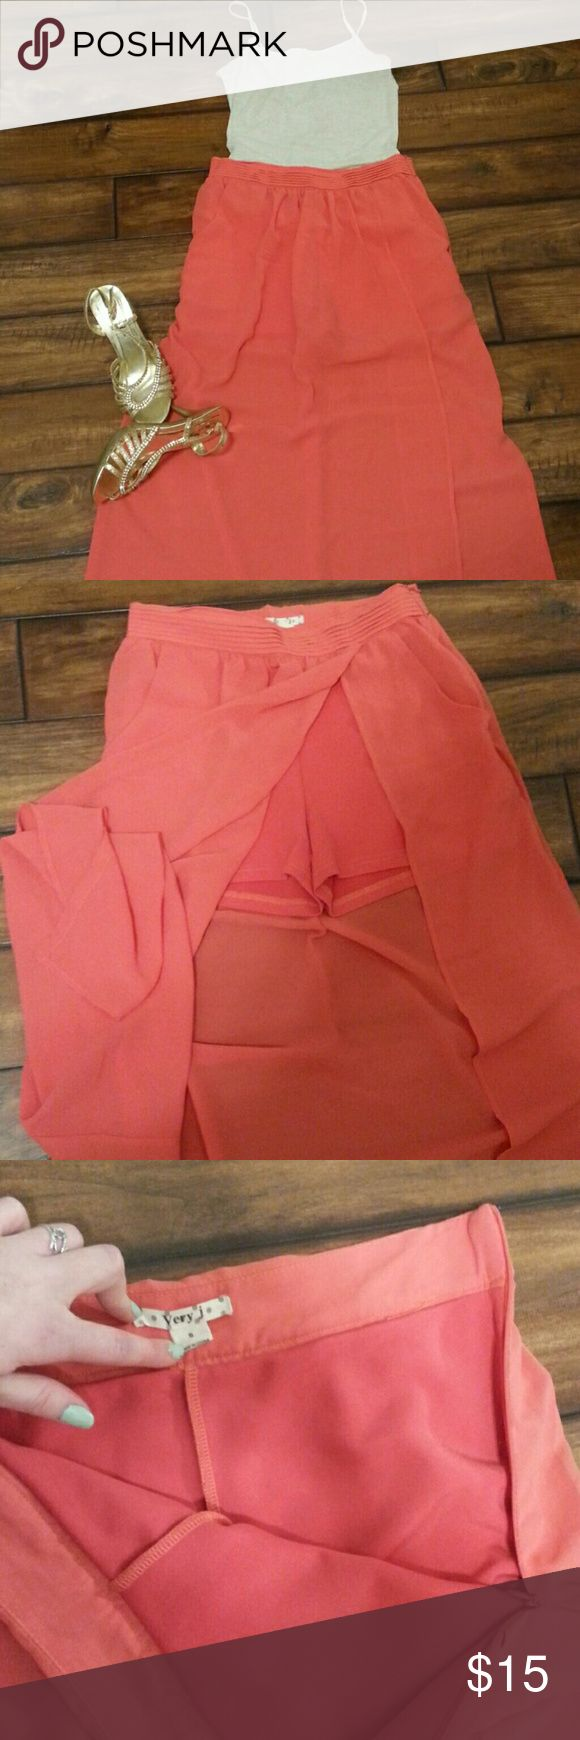 Sheer Coral Maxi Skirt Size S. Coral shorts underneath and a slit that goes up to the waist. Zipper on the side and pockets because who doesn't love those! Super cute and breezy. Perfect for a walk on the beach in style! Very J Skirts Maxi